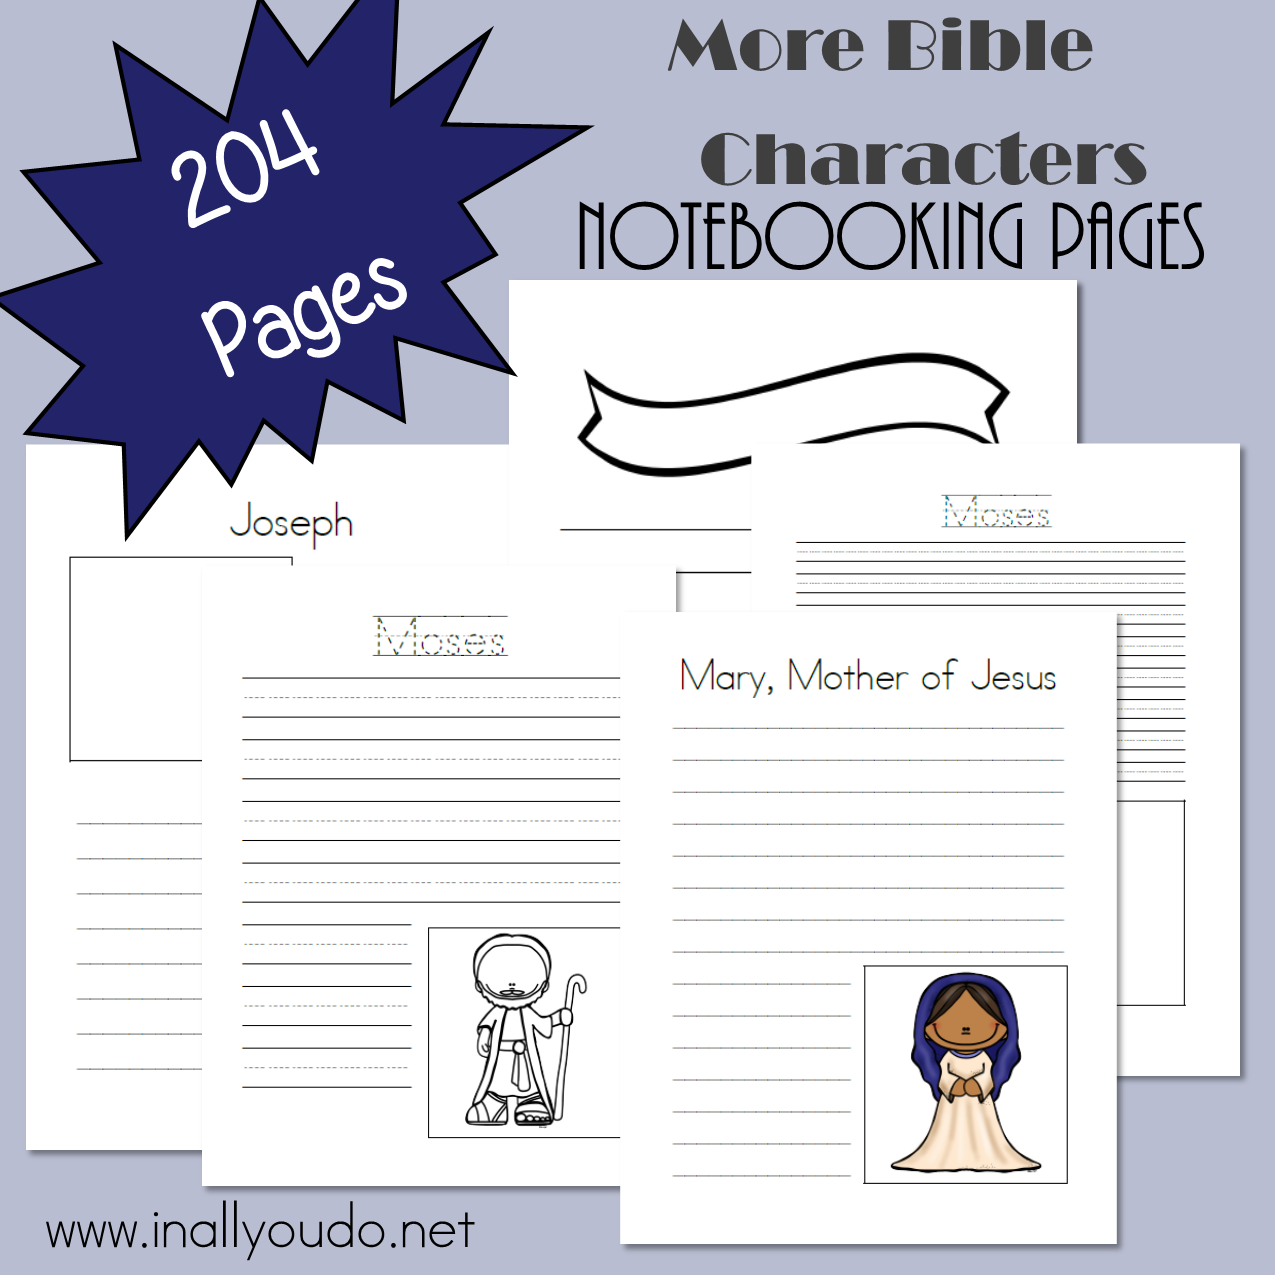 12 MORE Bible Characters Notebooking Pages